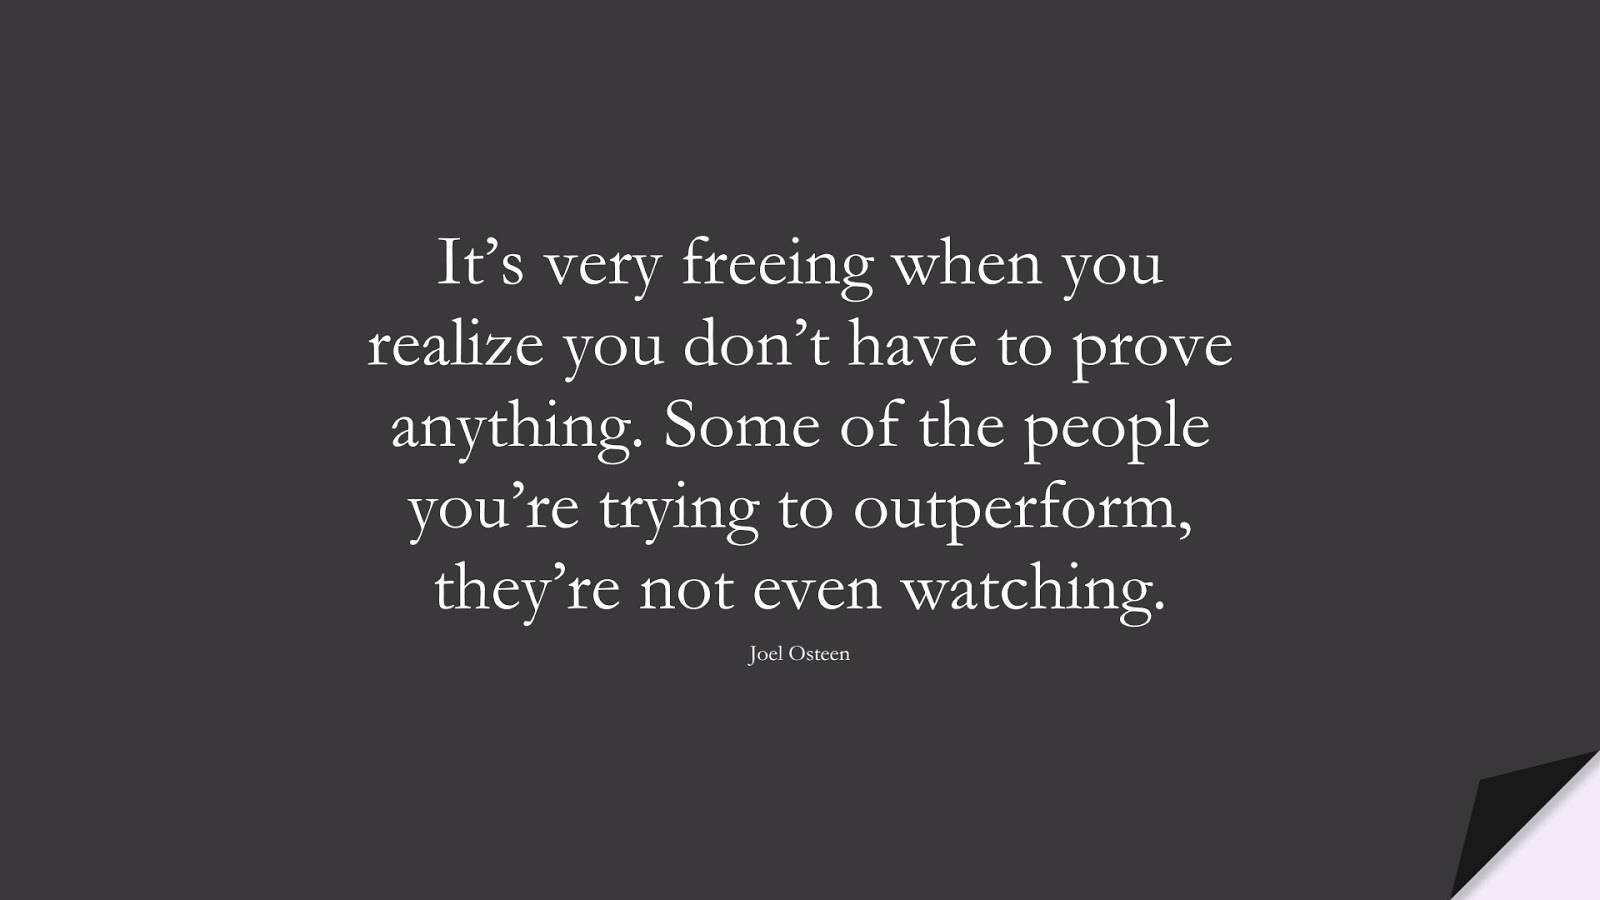 It's very freeing when you realize you don't have to prove anything. Some of the people you're trying to outperform, they're not even watching. (Joel Osteen);  #LoveYourselfQuotes